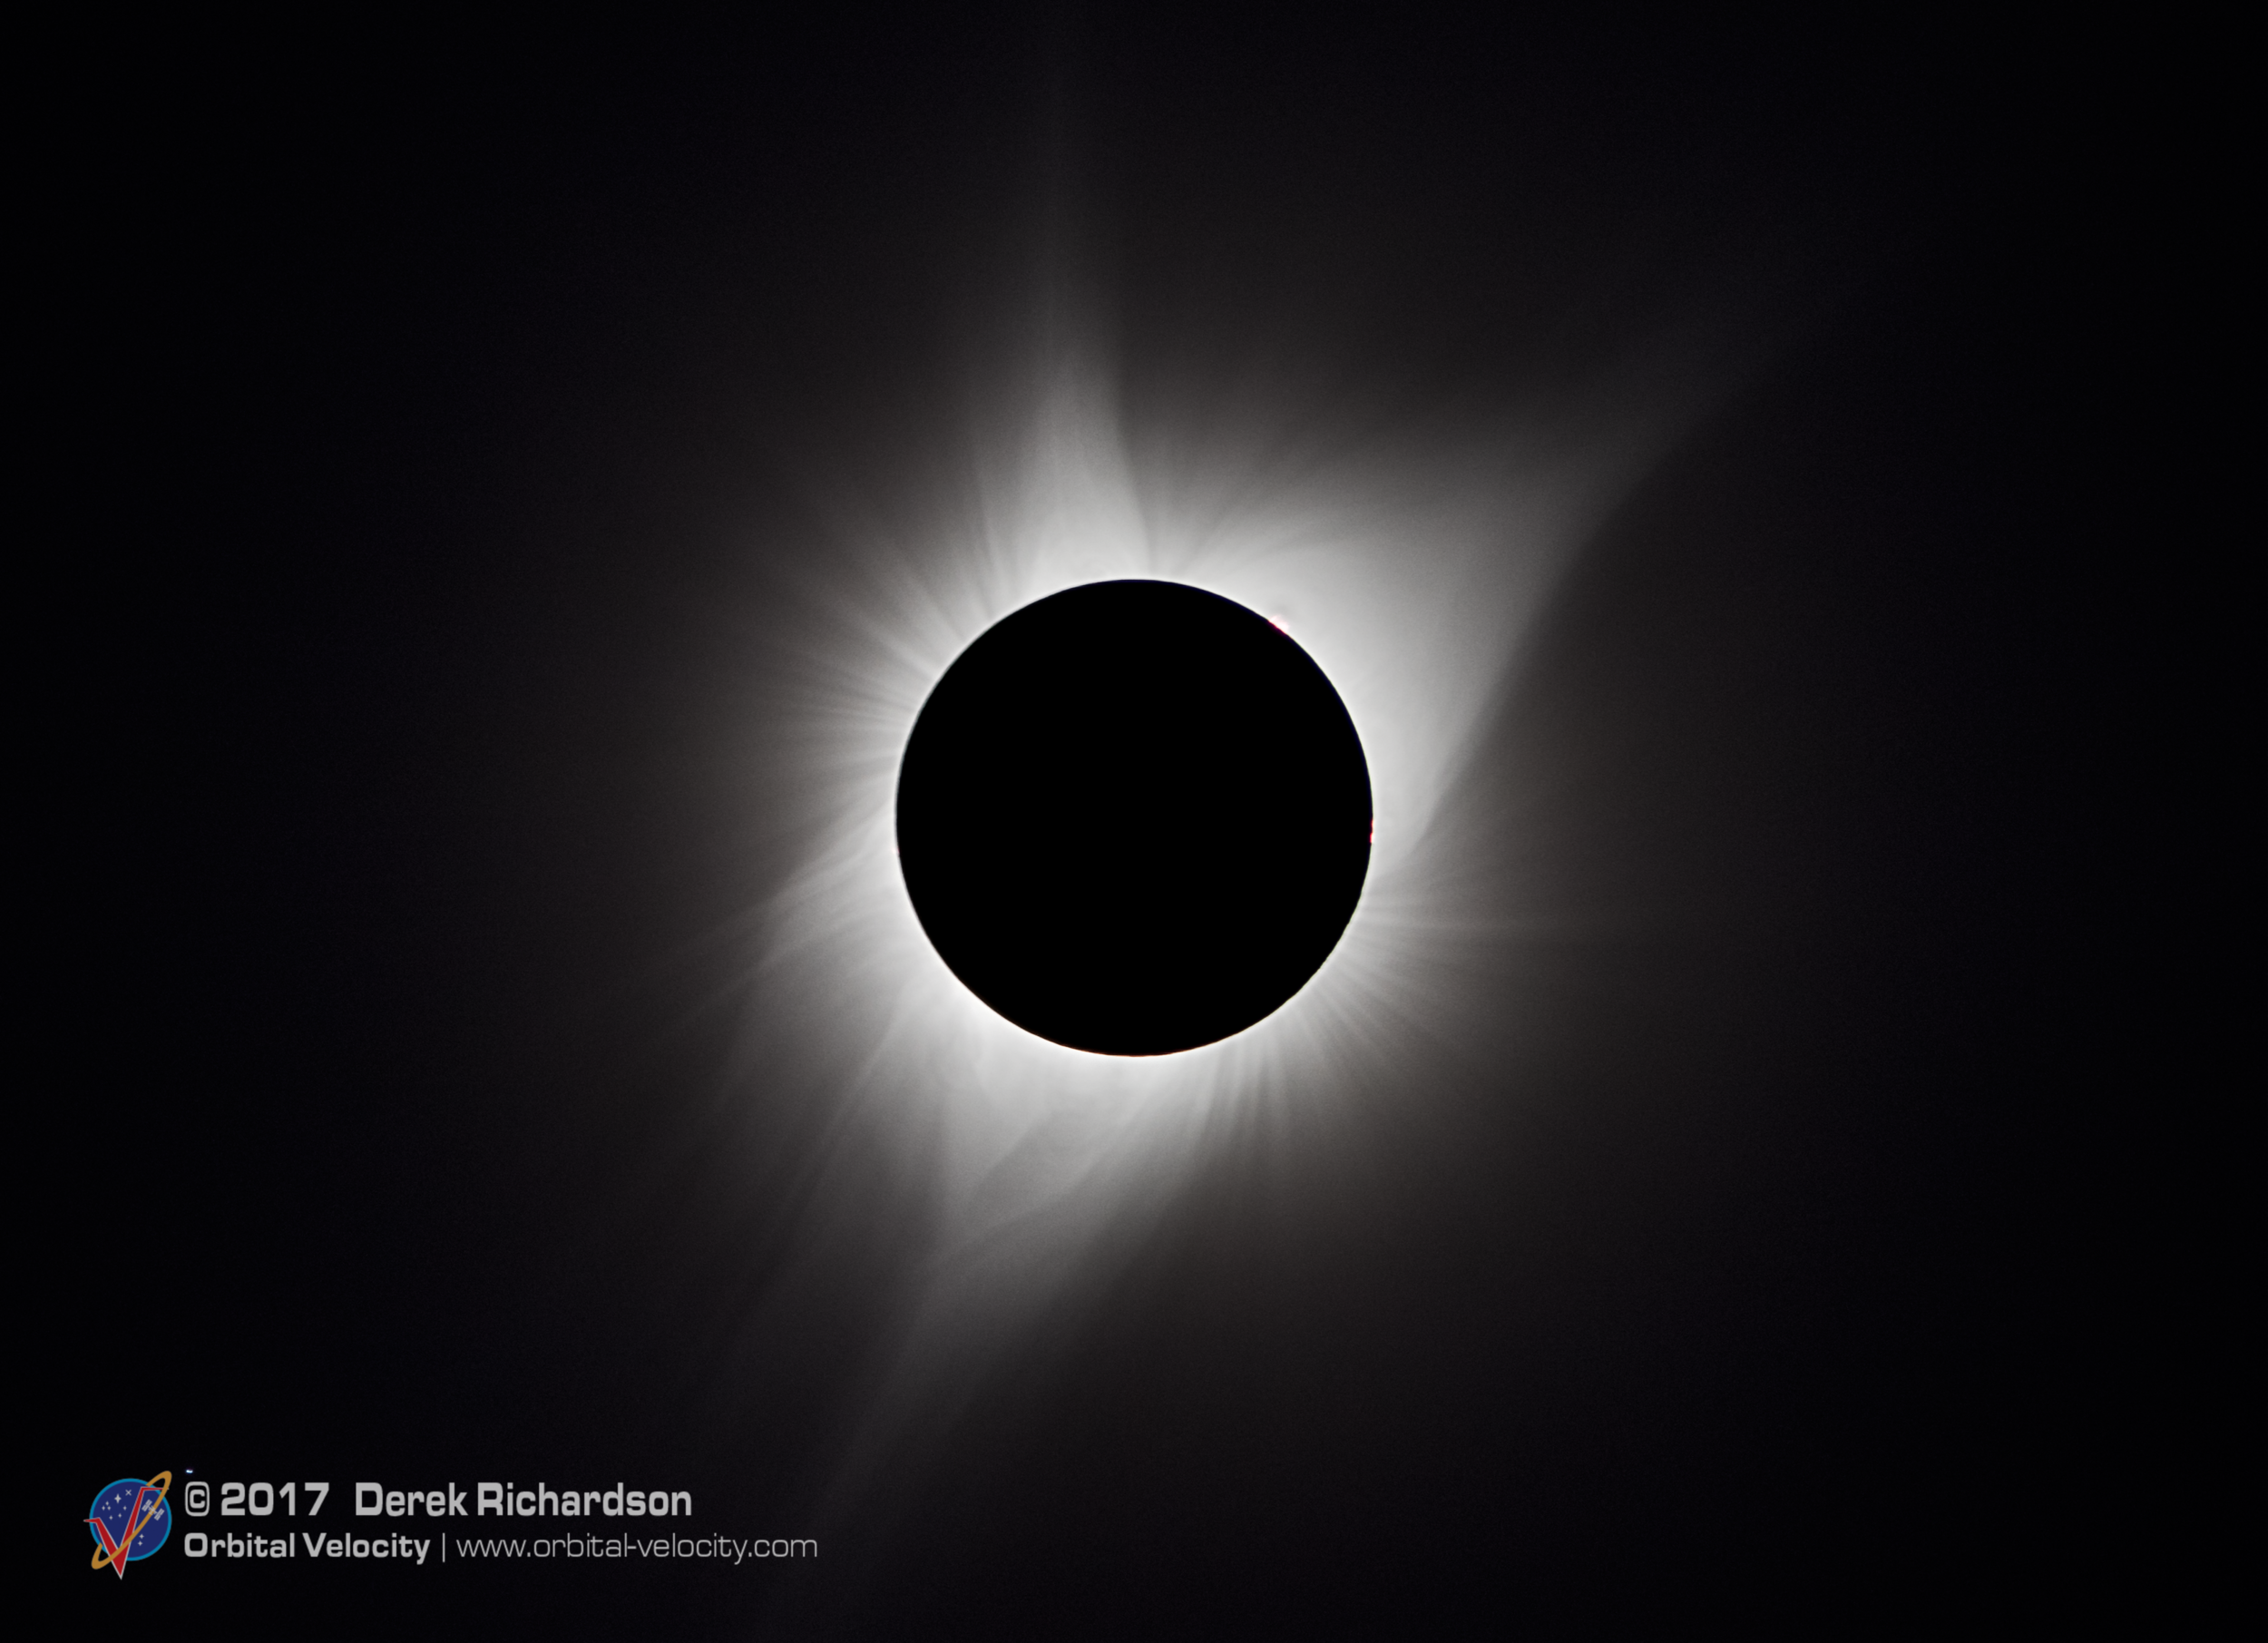 A composite of several exposures of totality. While human eyes can see a wide range of details, it is difficult for one image to capture the full scope of the eclipse. In reality, it often requires multiple exposures stacked on top of each other. Photo Credit: Derek Richardson / Orbital Velocity